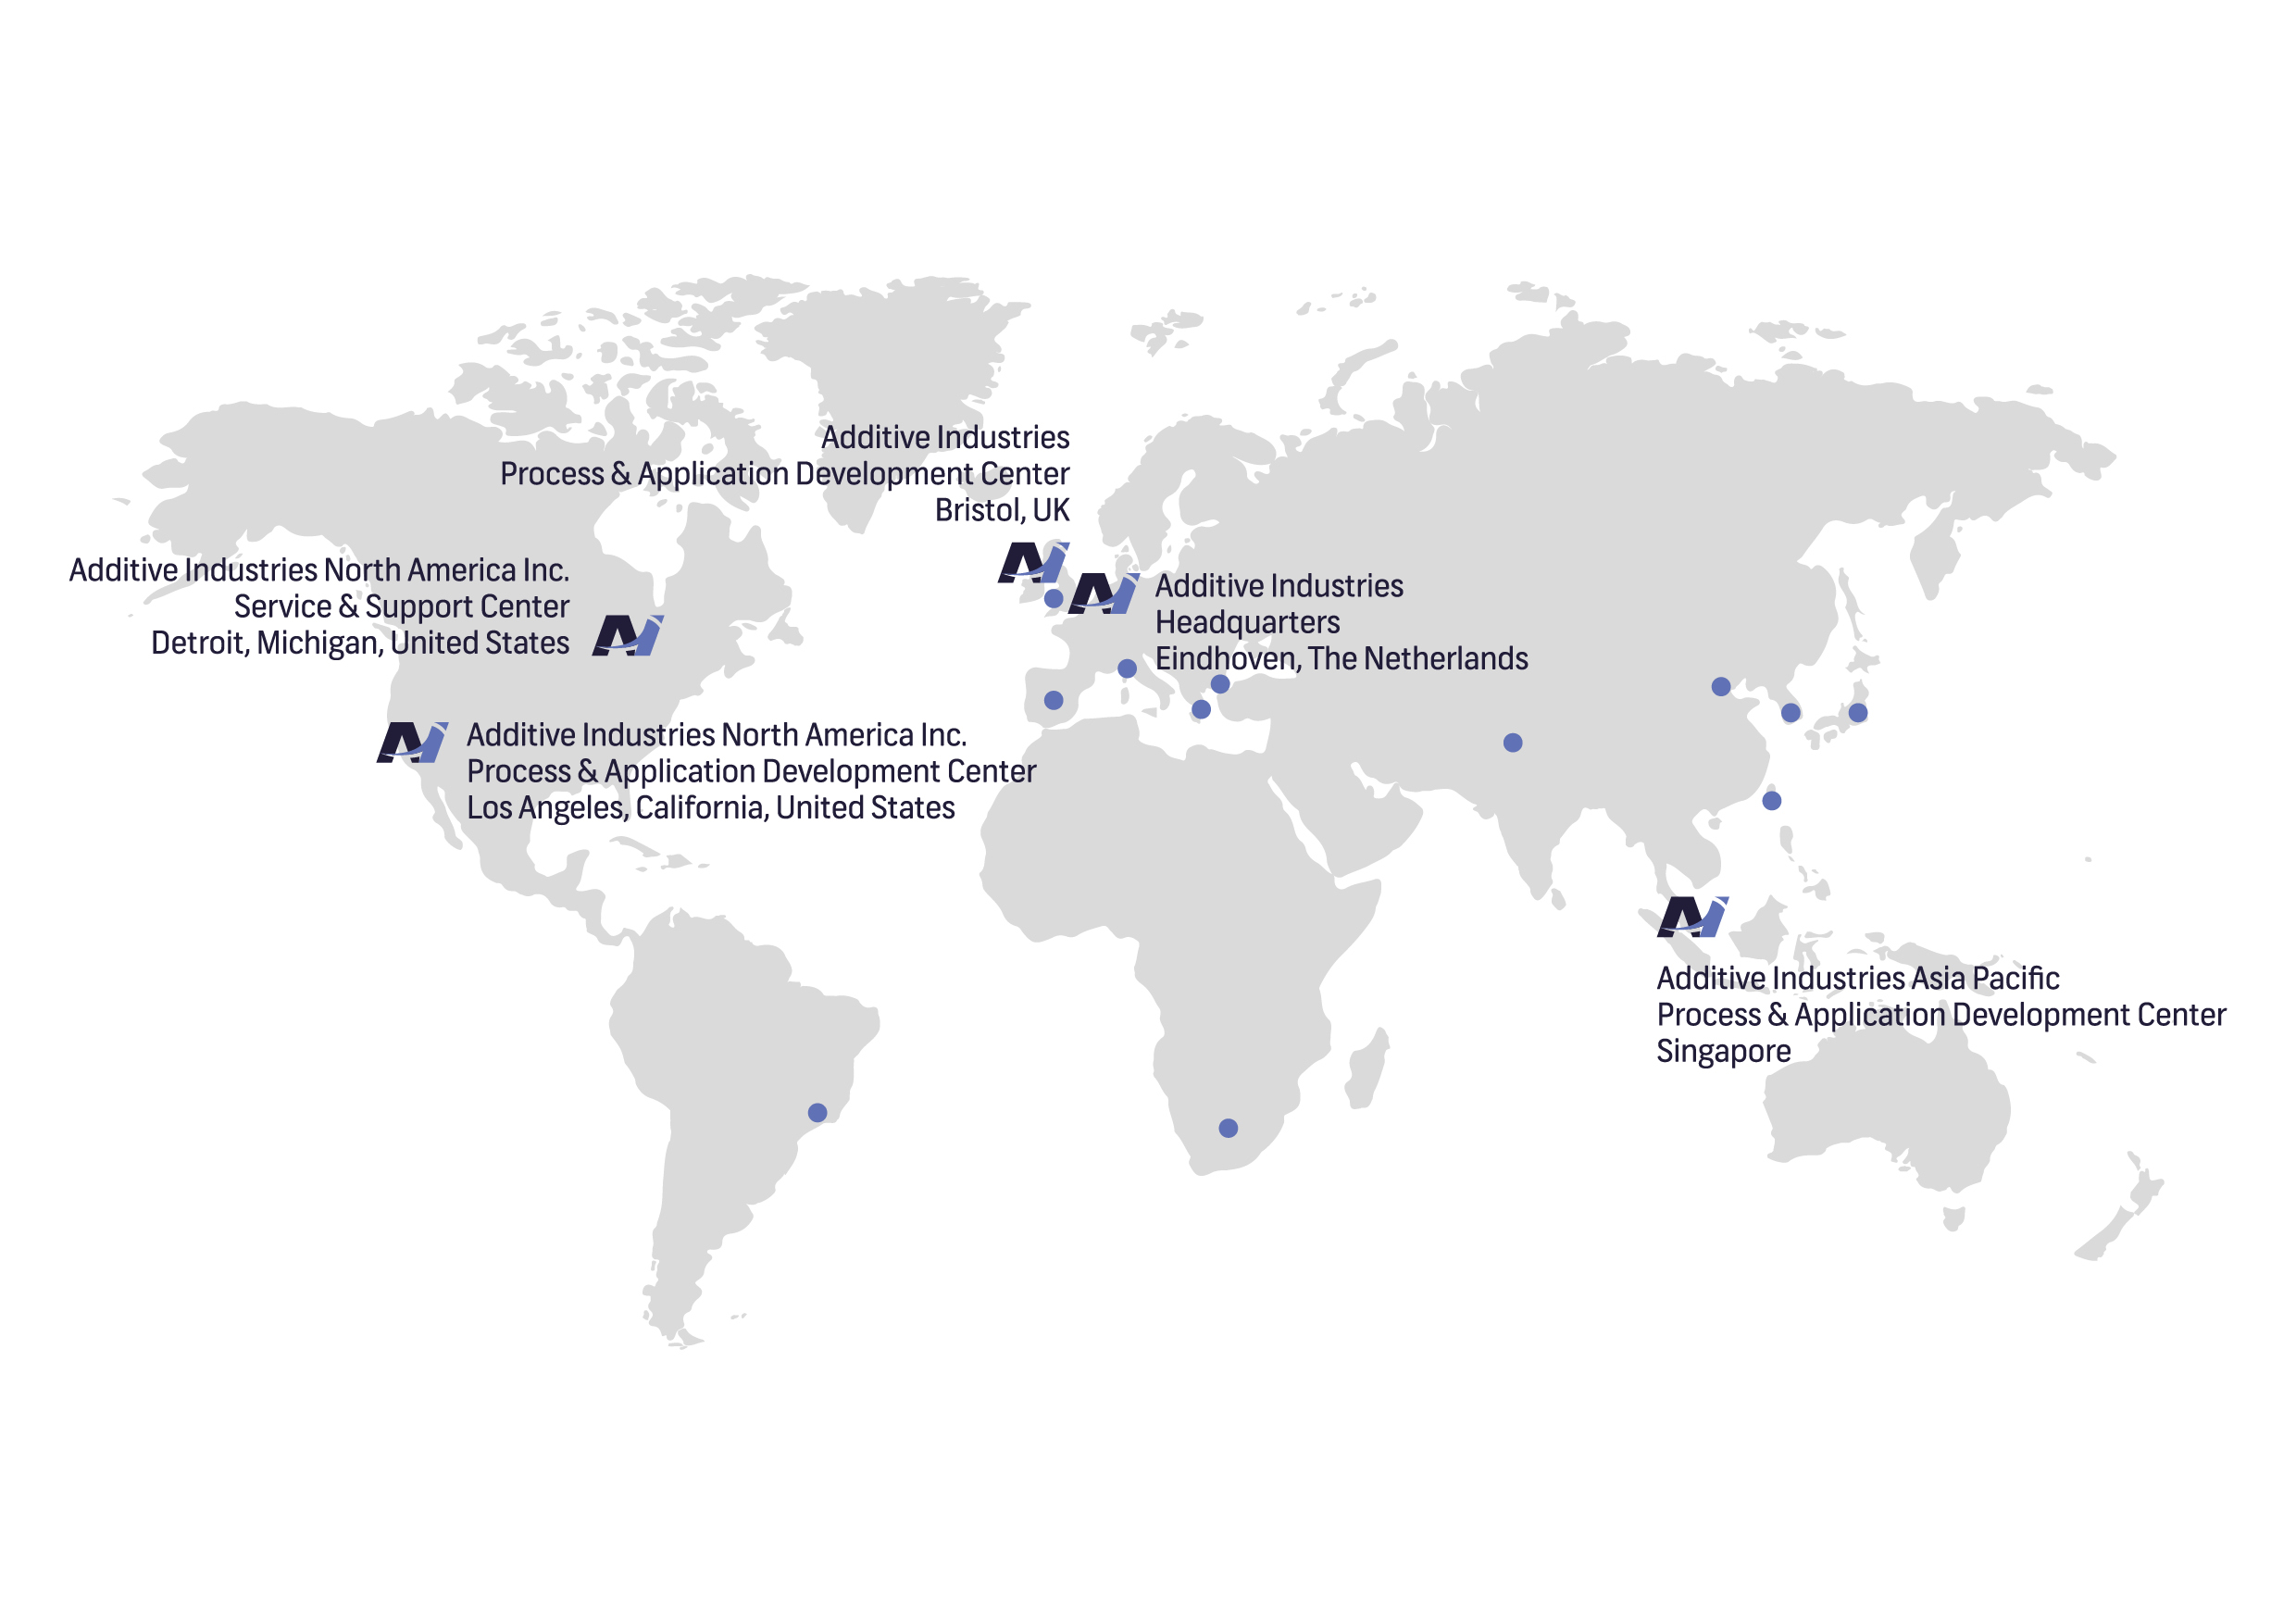 Additive Industries' world wide offices and partners